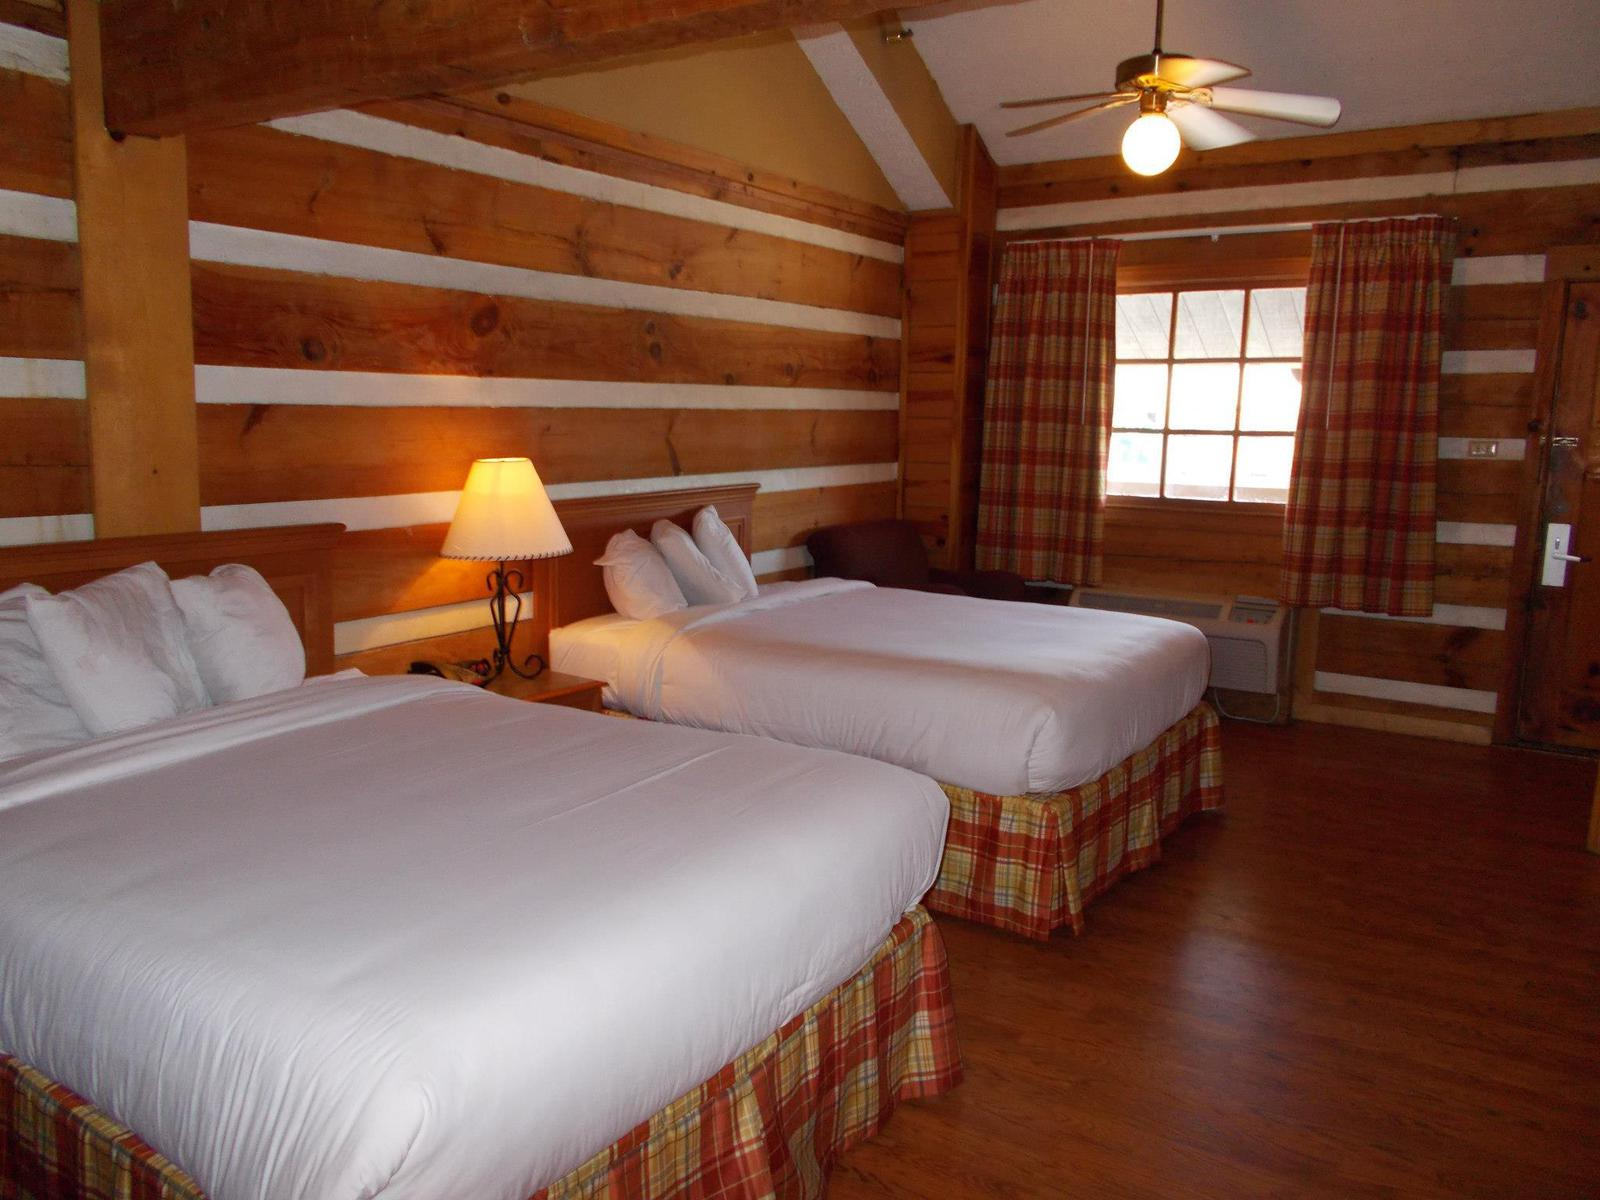 the guestrooms at Timbers Lodge